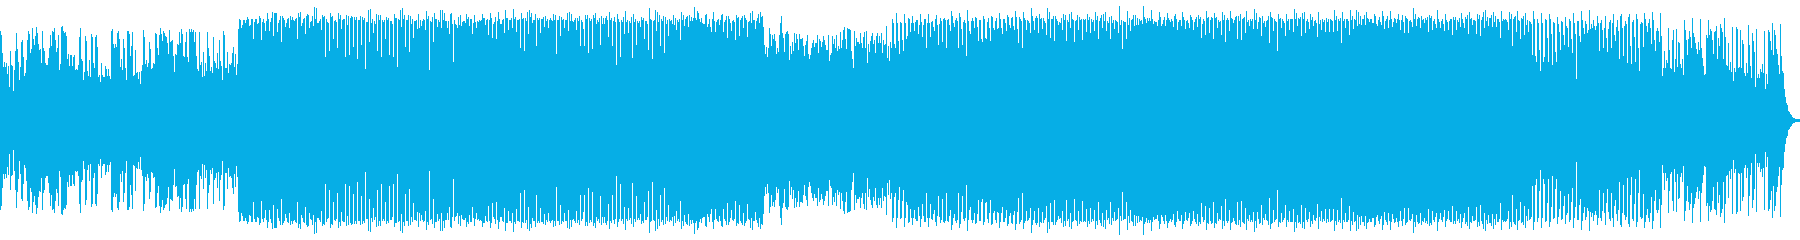 Corporate VP refreshing's reproduced waveform